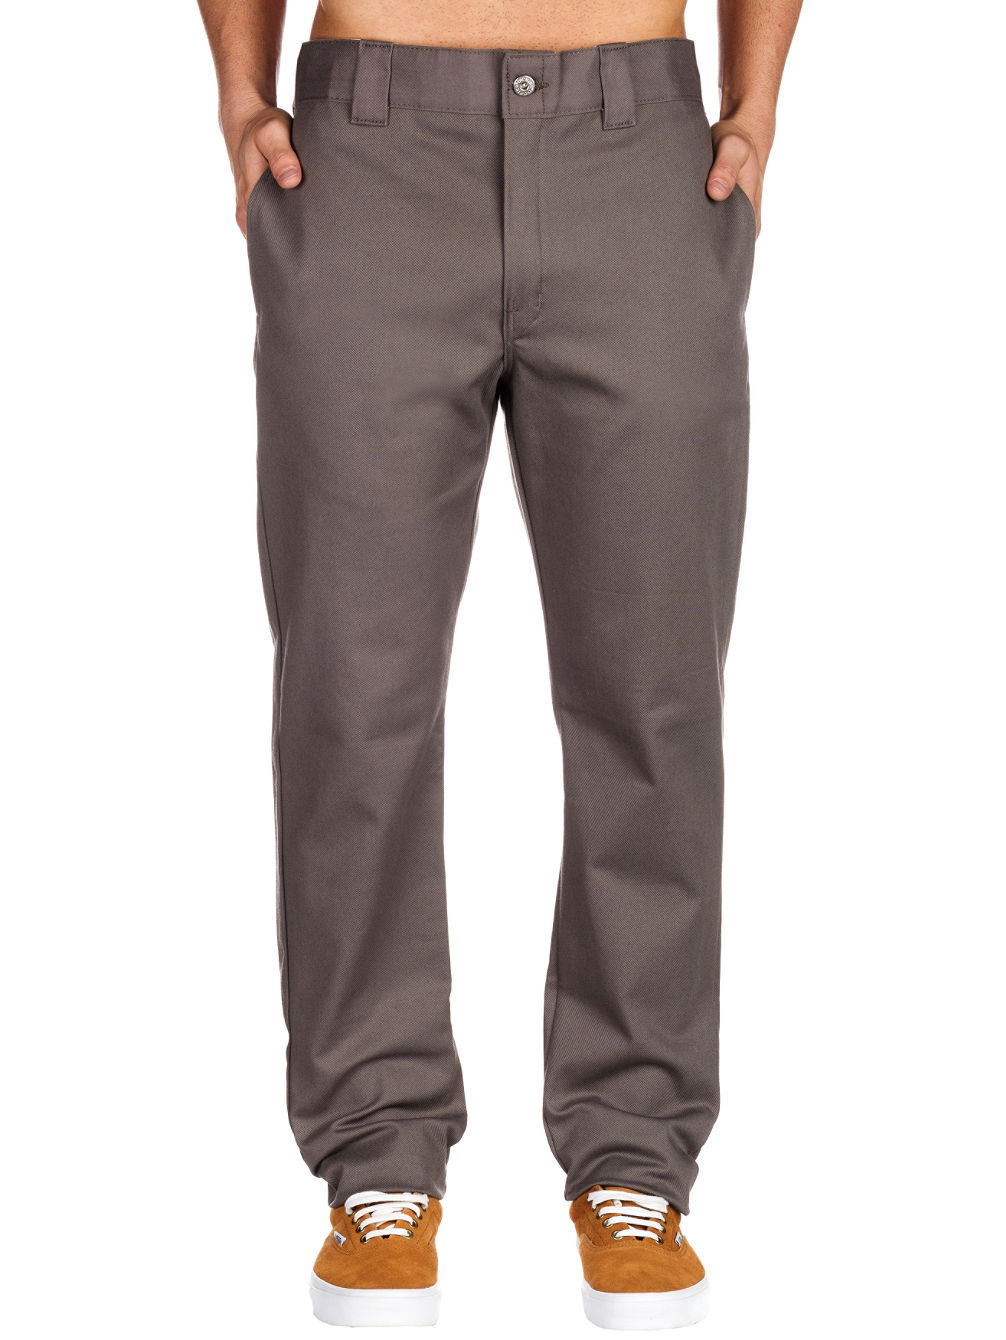 Dickies Work Pants and Shorts Work pants by Dickies are built tough as nails yet provide you complete comfort during a hard day at work. We offer a popular selection of Dickies pants all at .